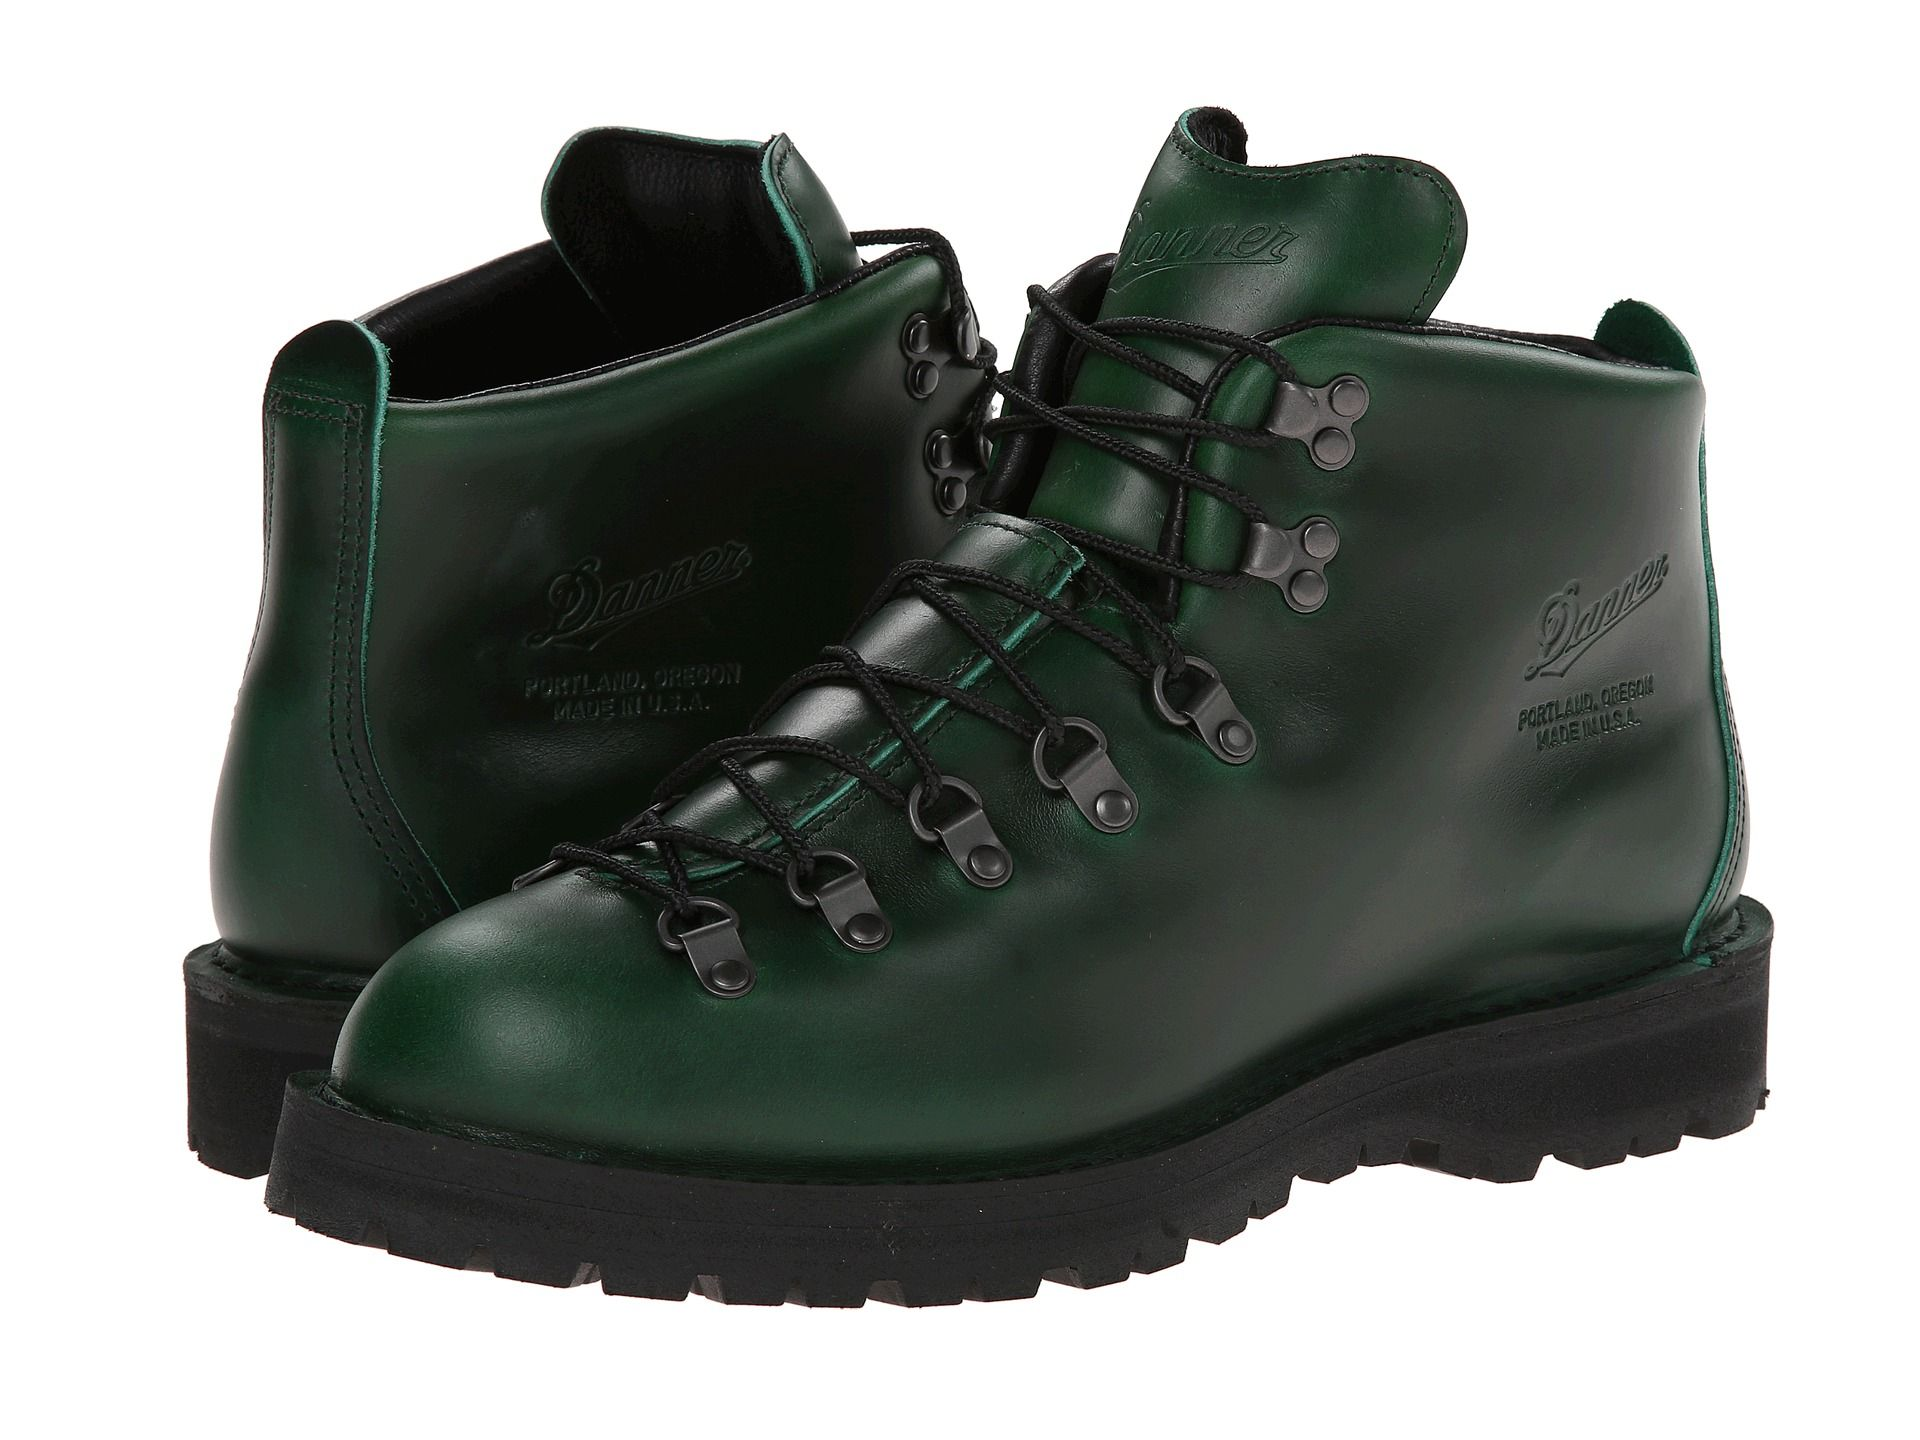 19cf69c8c81 Danner Mountain Light Golf | Winter Layering | Golf boots, Shoe ...